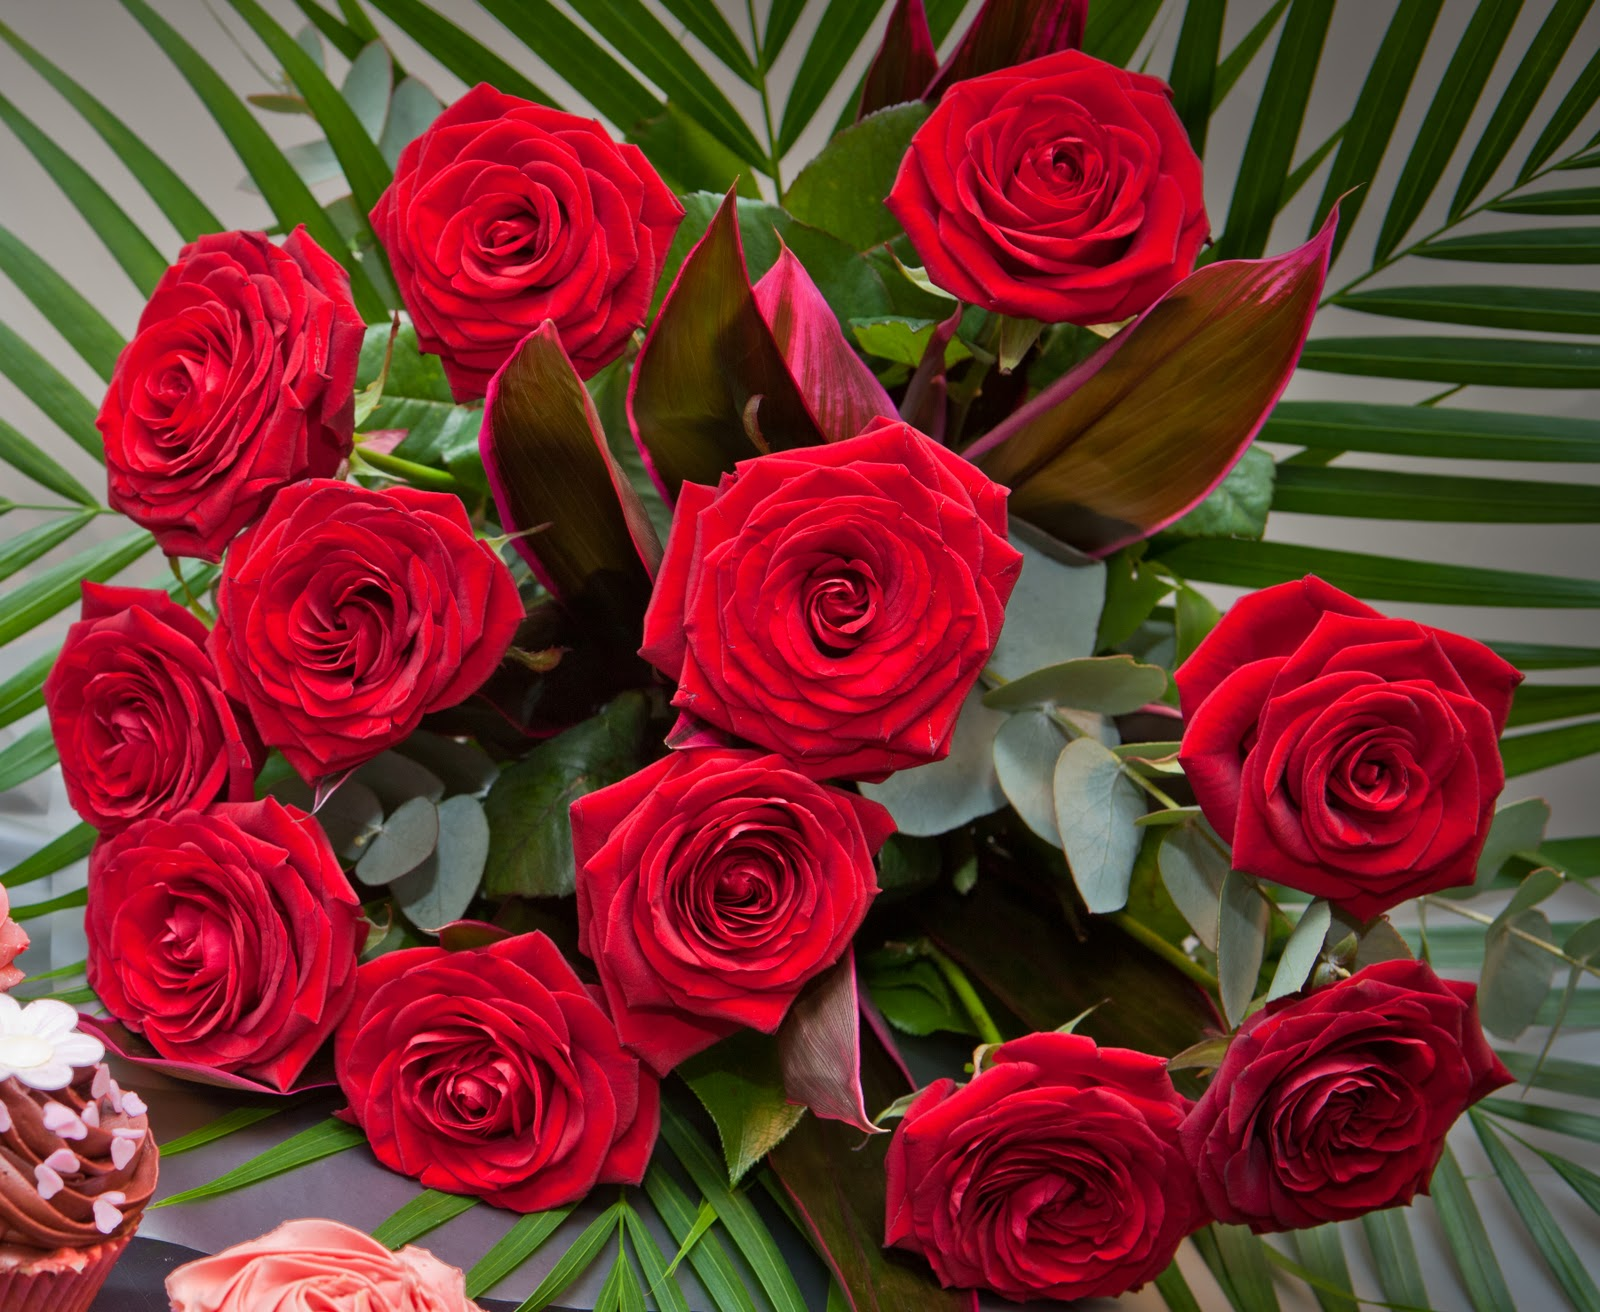 Sad Quotes Wallpapers In Urdu Red Roses Flower Beautiful Red Rose Wallpaper Angelic Hugs